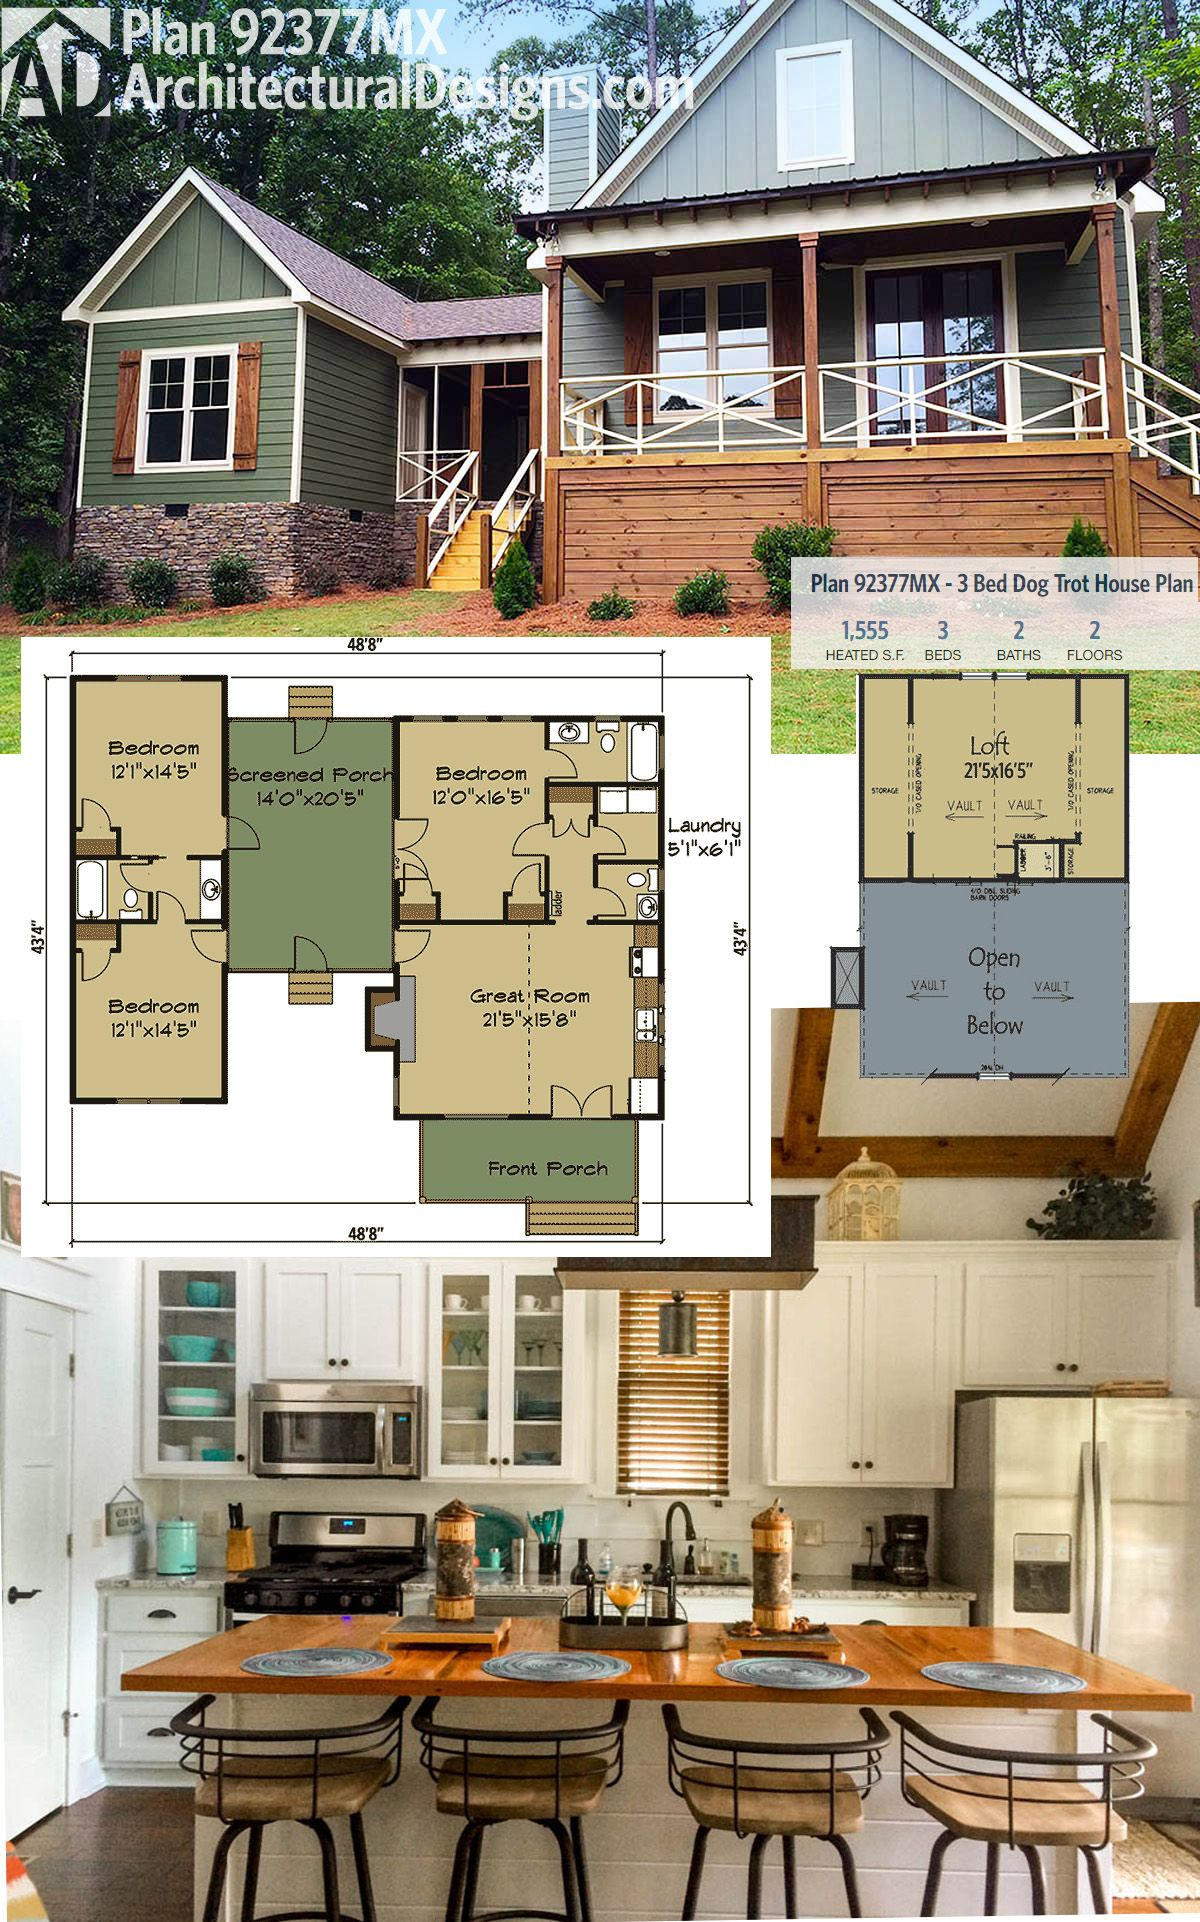 Architectural Designs Dog Trot House Plan 92377mx Gives You 3 Beds Plus A Sleeping Loft Overlooking The Vaulted Great Room Just Over 1 500 Square Feet Of